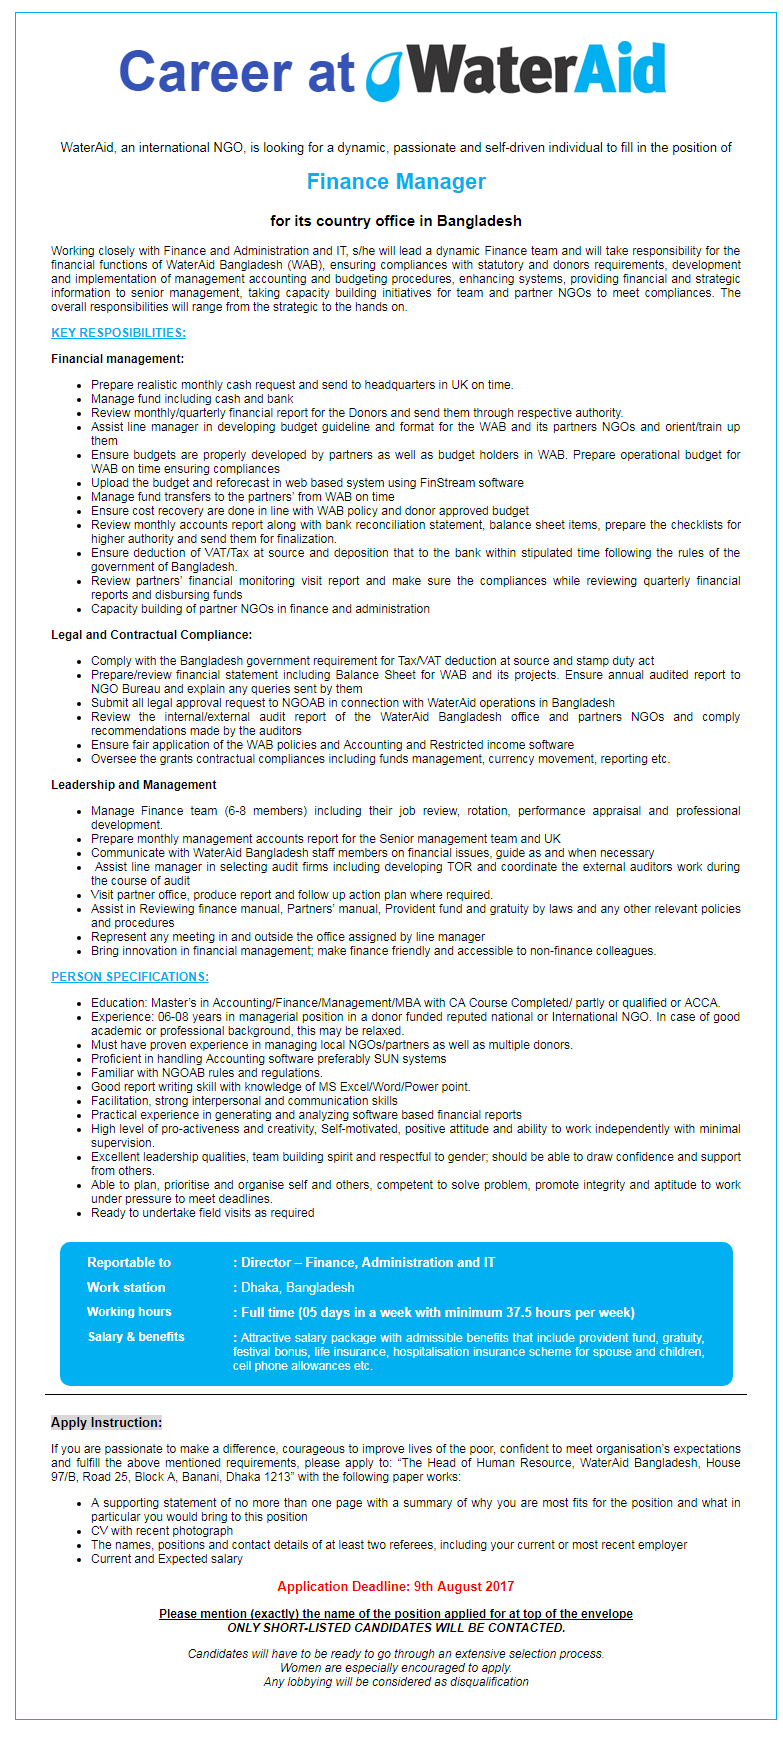 WaterAid Bangladesh Job Circular 2017